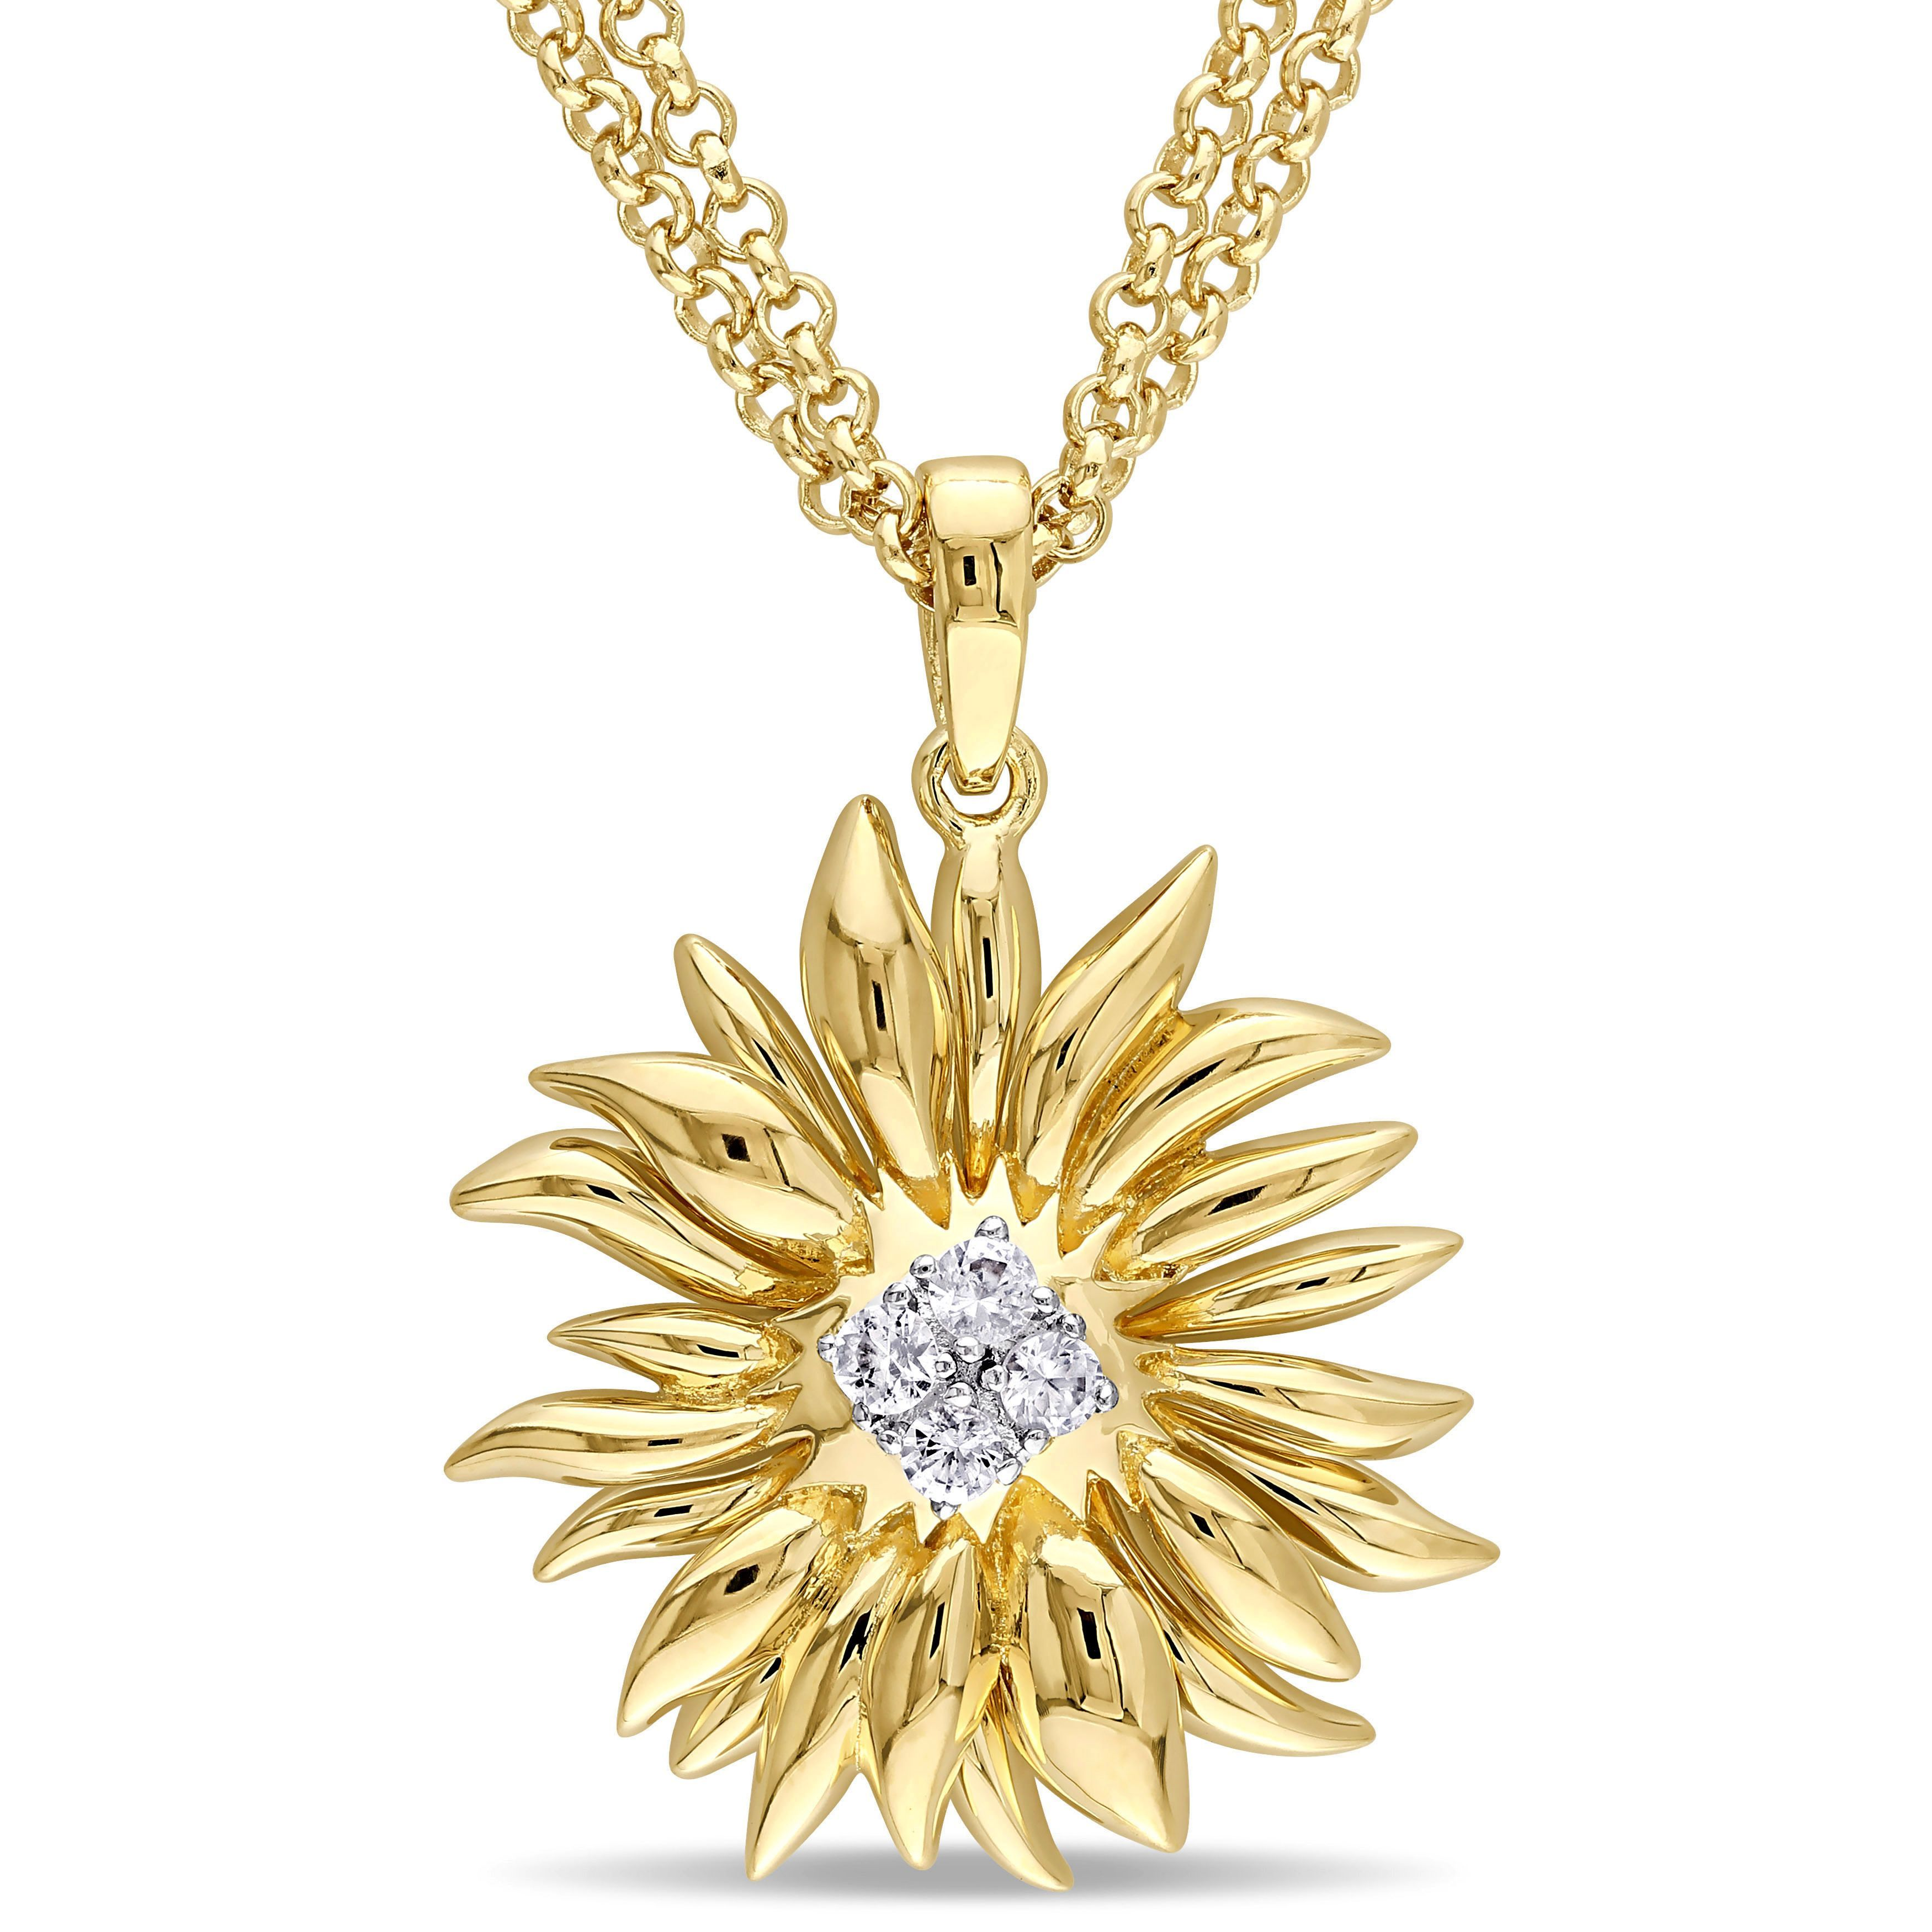 Versace 19.69 Abbigliamento Sportivo SRL Sapphire Sunflower Drop Necklace in 18k Yellow Gold Plated Sterling Silver, Women's